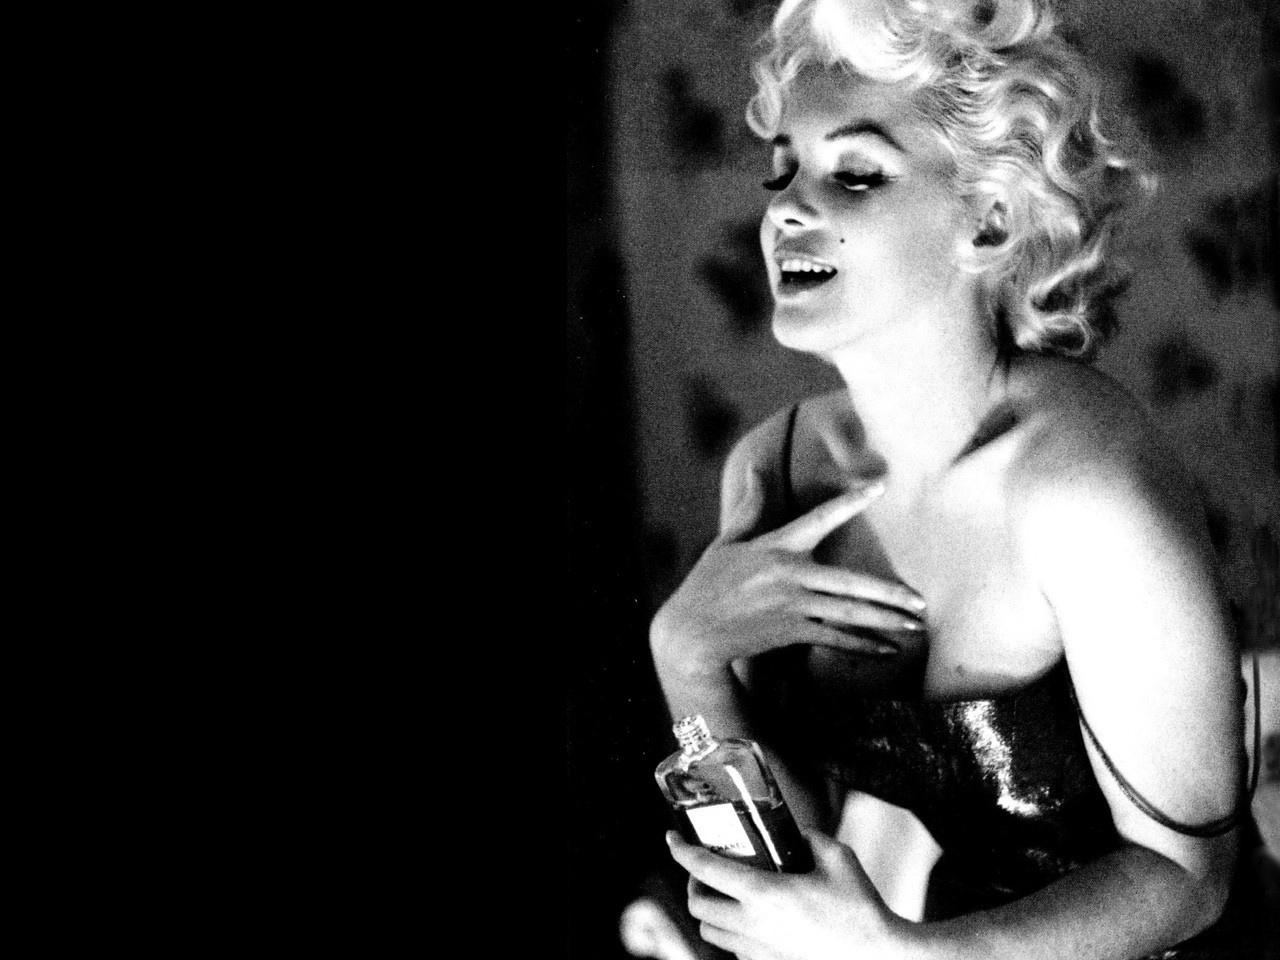 Marilyn Monroe Poster Marilyn Monroe Poster Full Wallpaper Celebrities Wallpaper Better